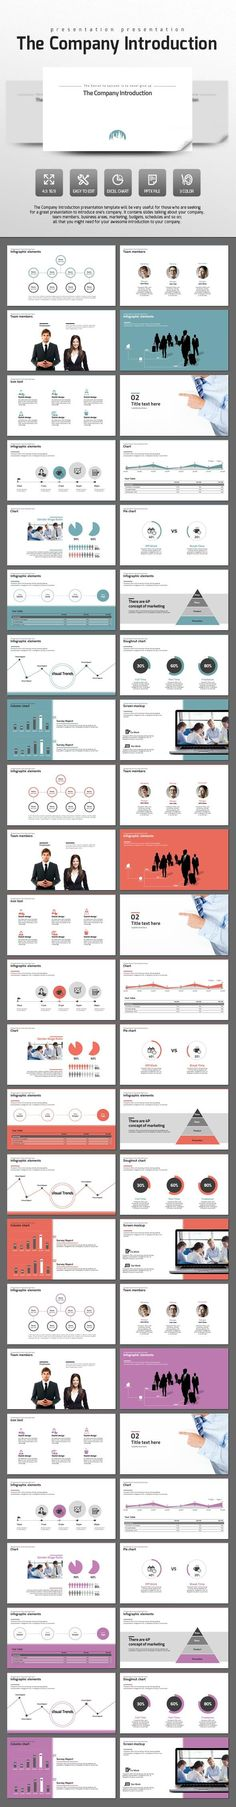 The Company Introduction - #PowerPoint #Templates Presentation Templates Download here: https://graphicriver.net/item/the-company-introduction/14435869?ref=alena994